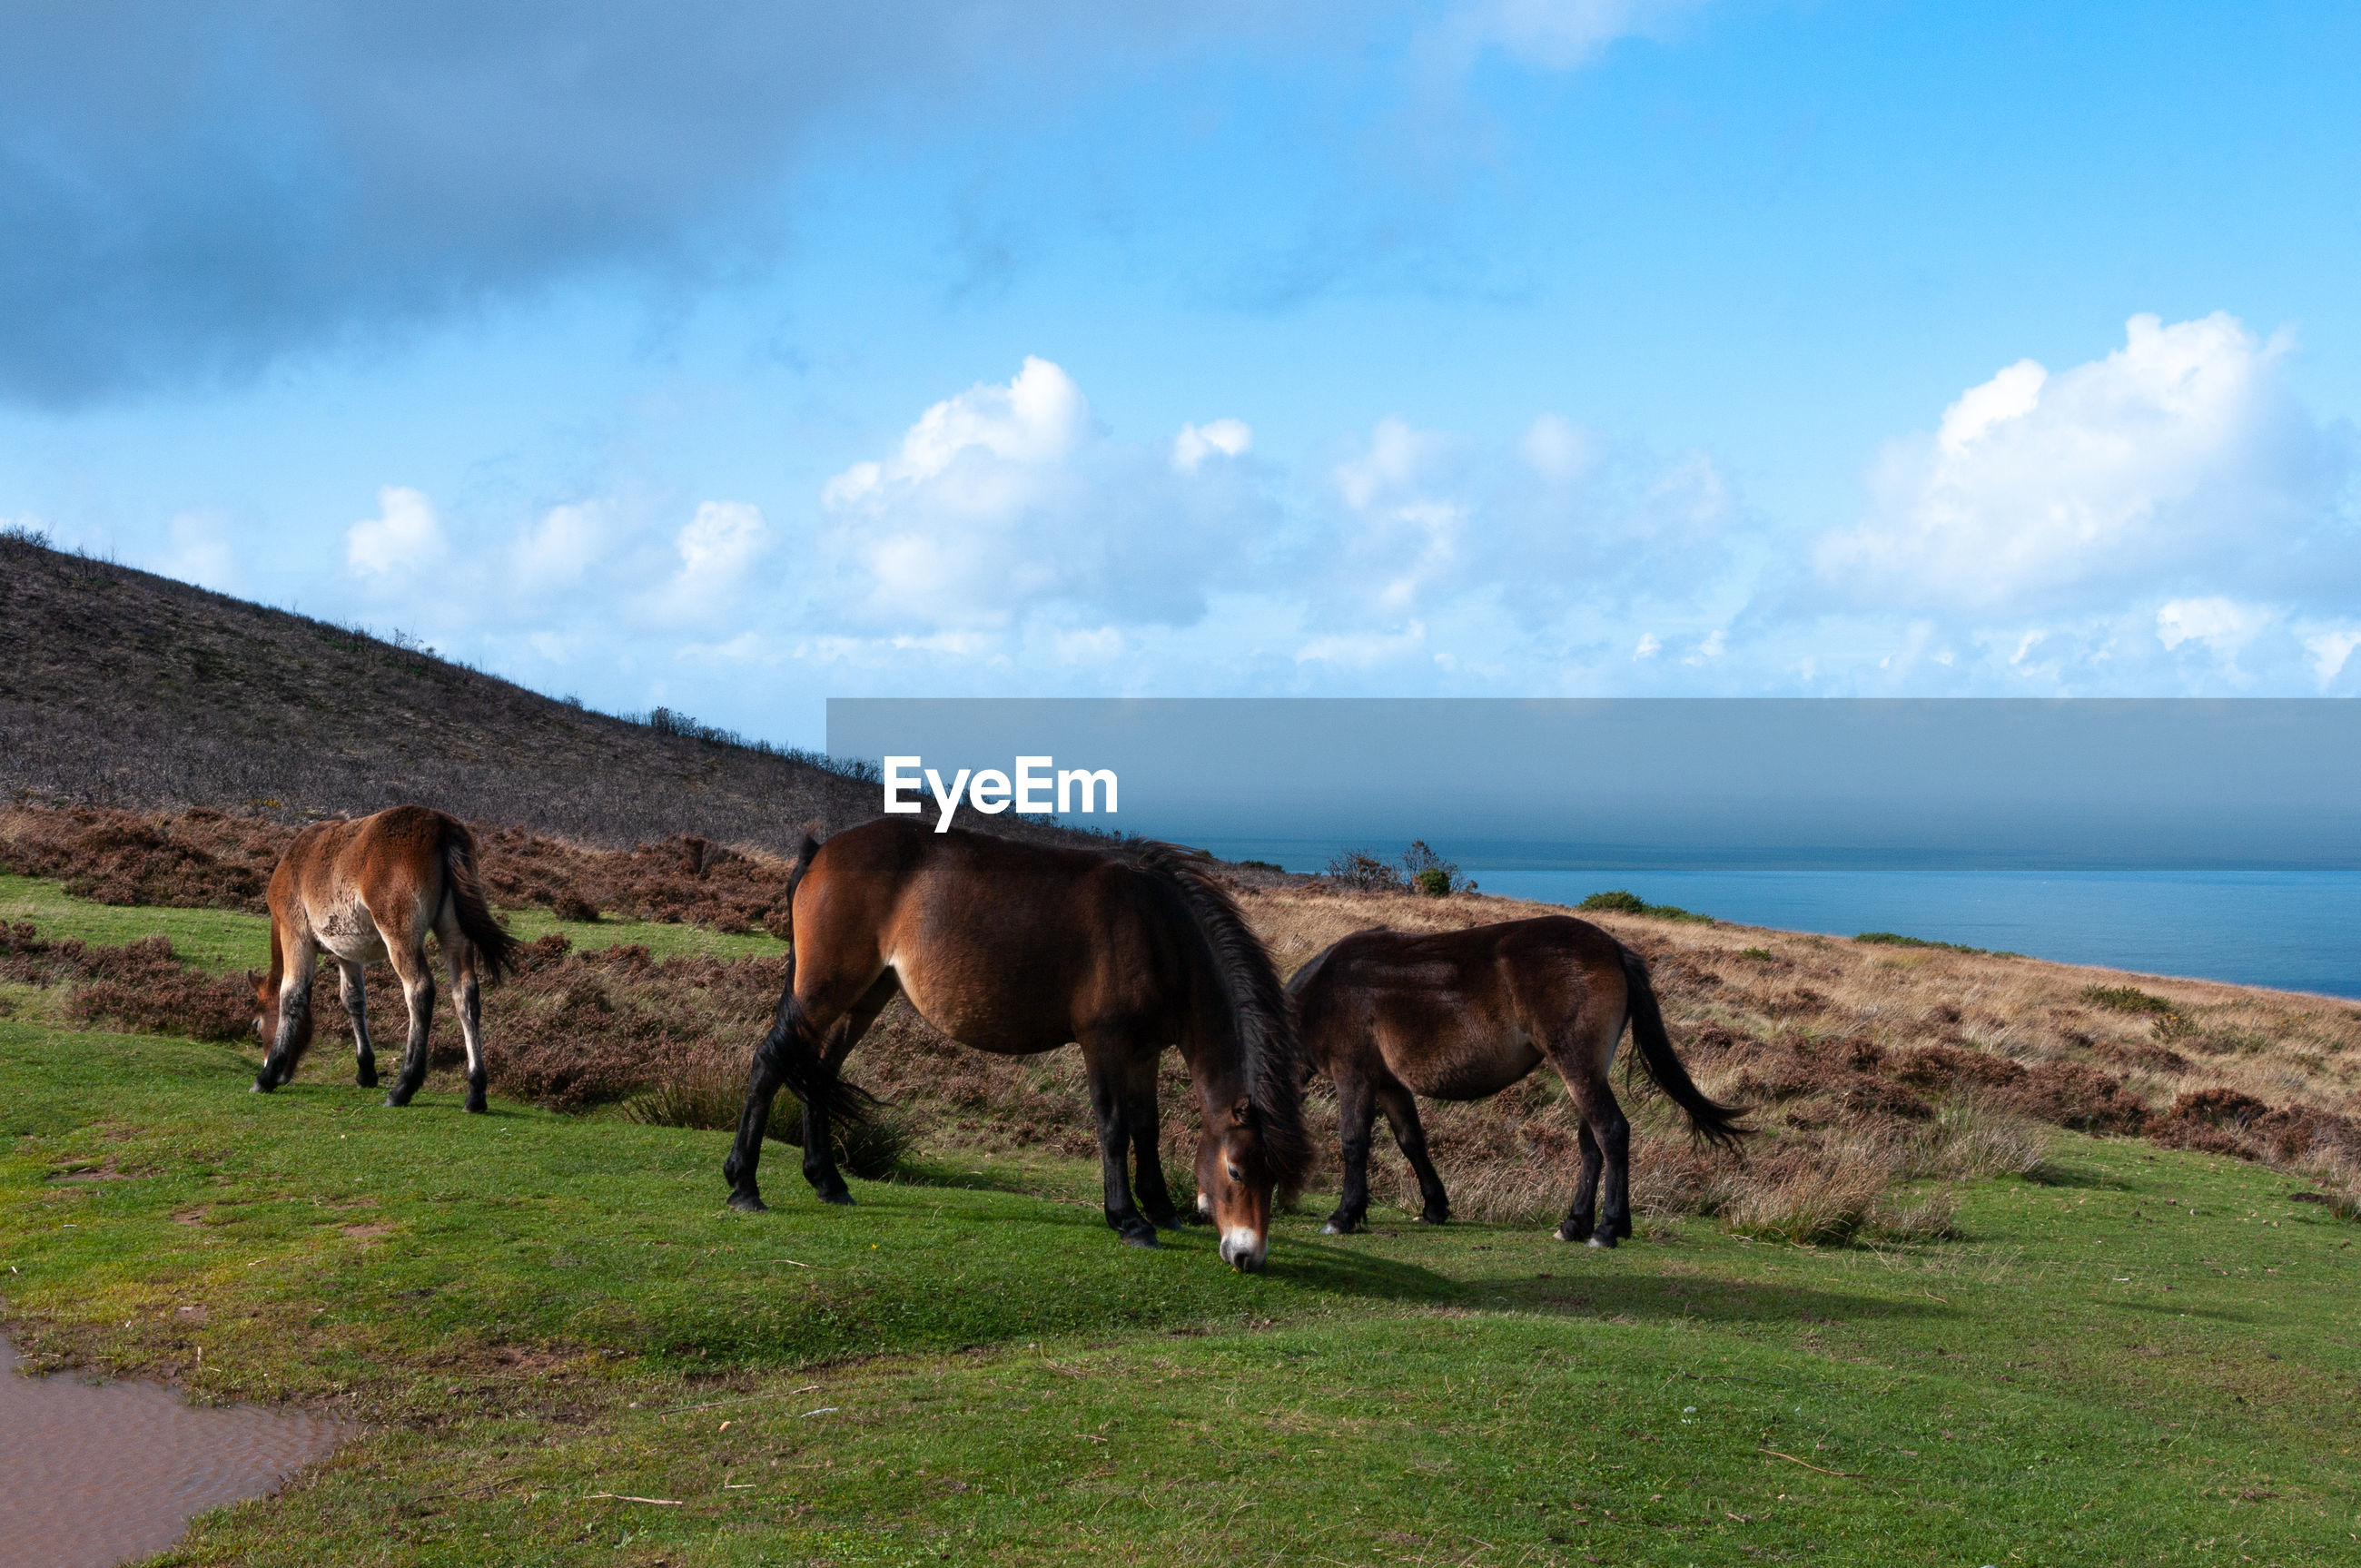 HORSES ON FIELD BY SEA